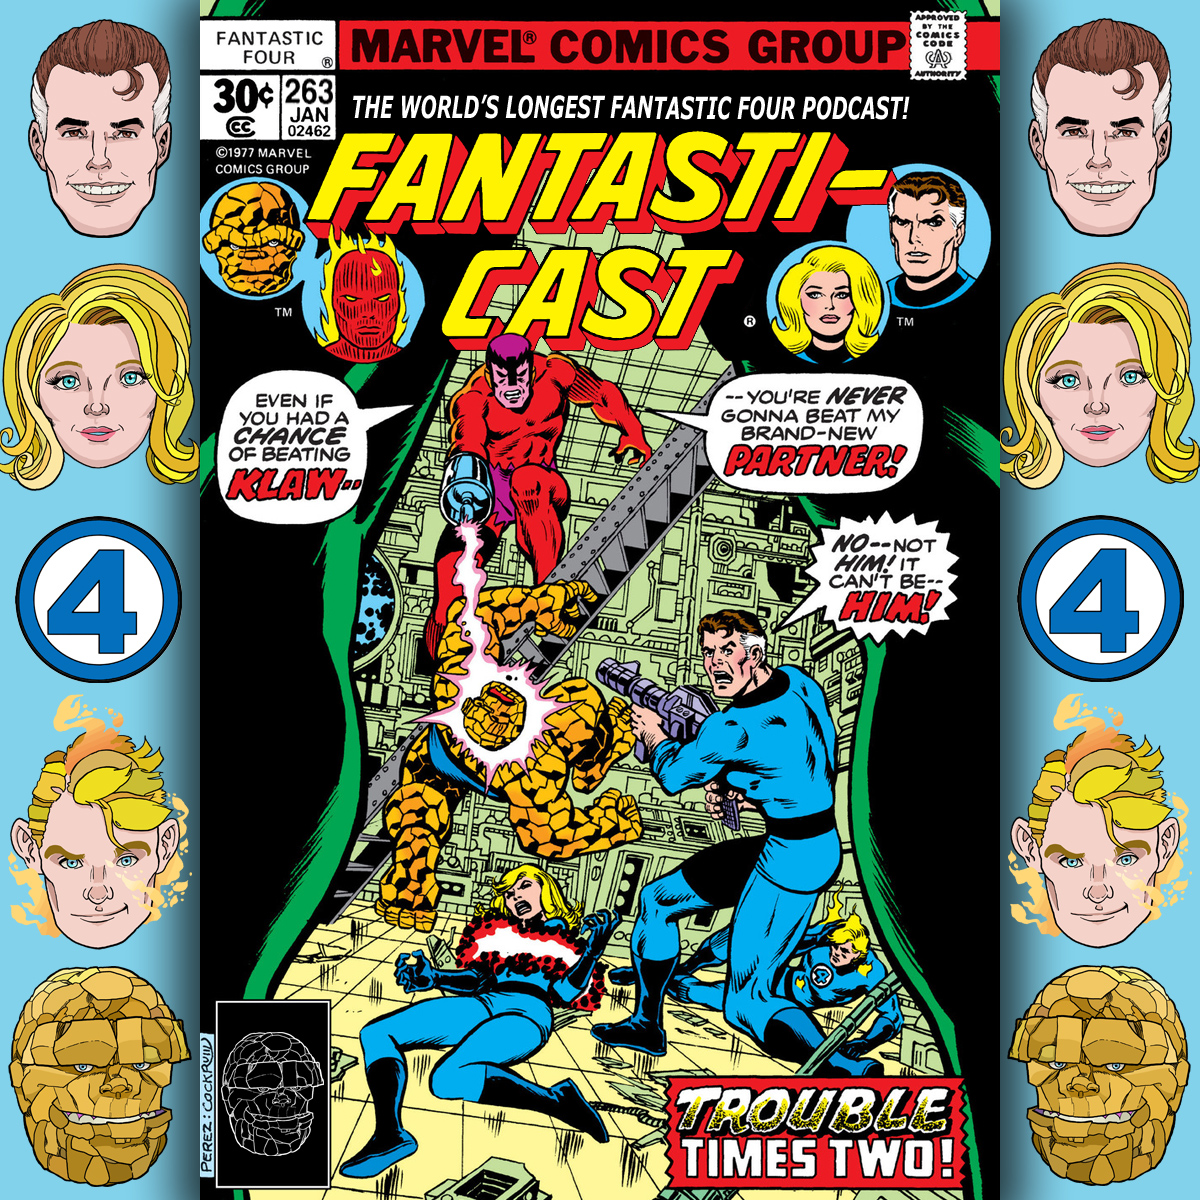 The Fantasticast Episode 263